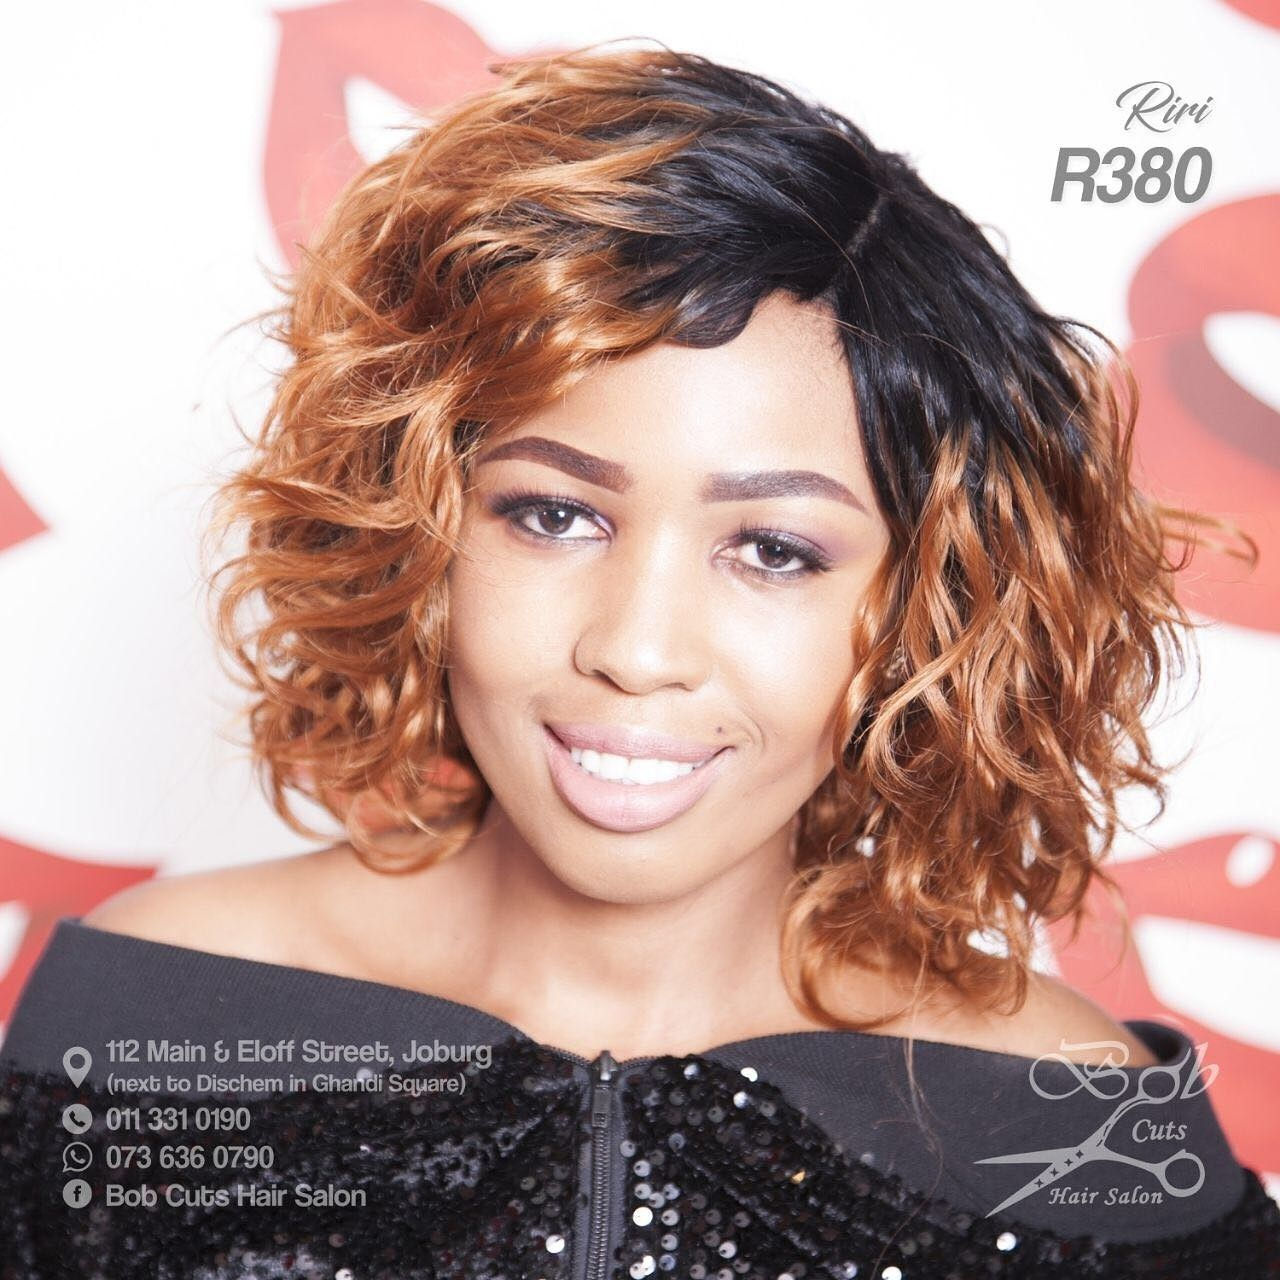 Another Look At Our Riri Wig Get It Today For R380 As A Bonus Get 50 Off Of Our Colour Changing Bobs Haircuts Color Changing Nails Hair Salon